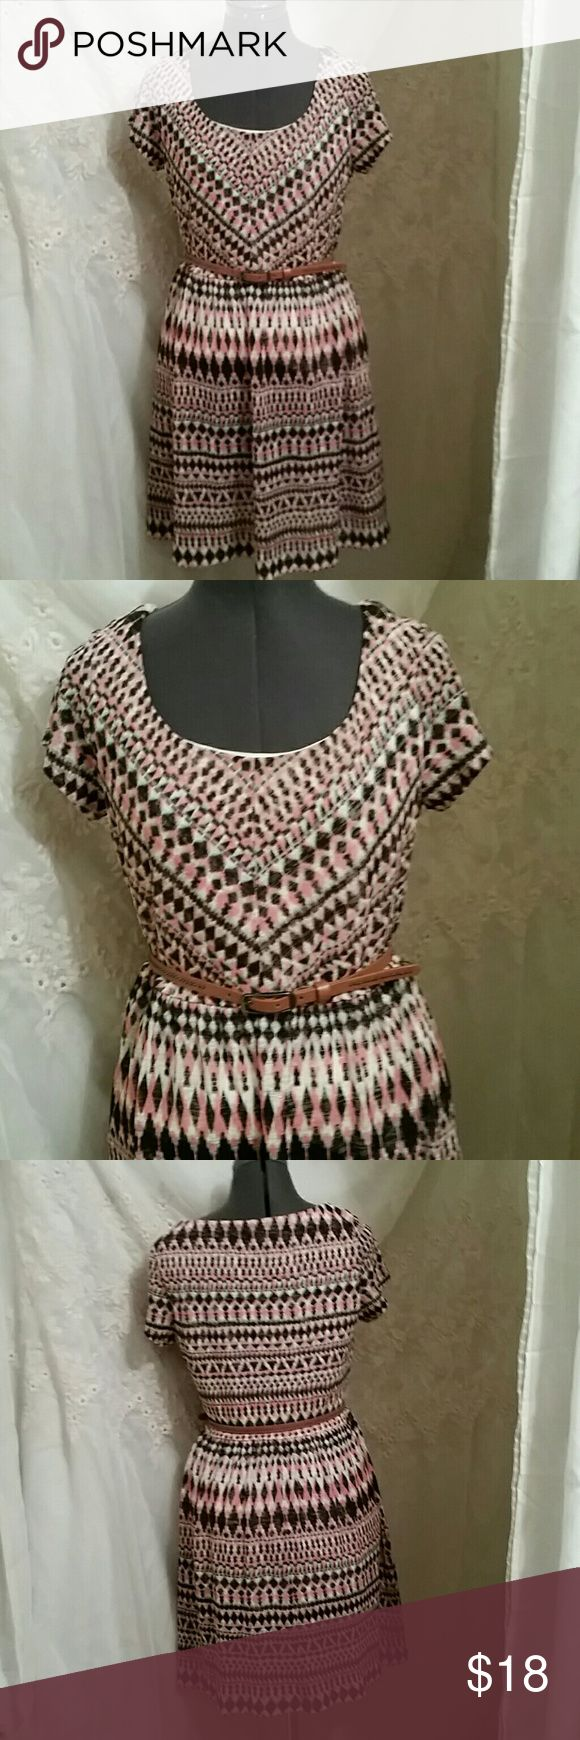 FLASH SALE SUPER CUTE TRIBAL PRINT DRESS This adorable dress is in EUC lightly wore once. Fully lined. Great look for the spring and summer. Dresses